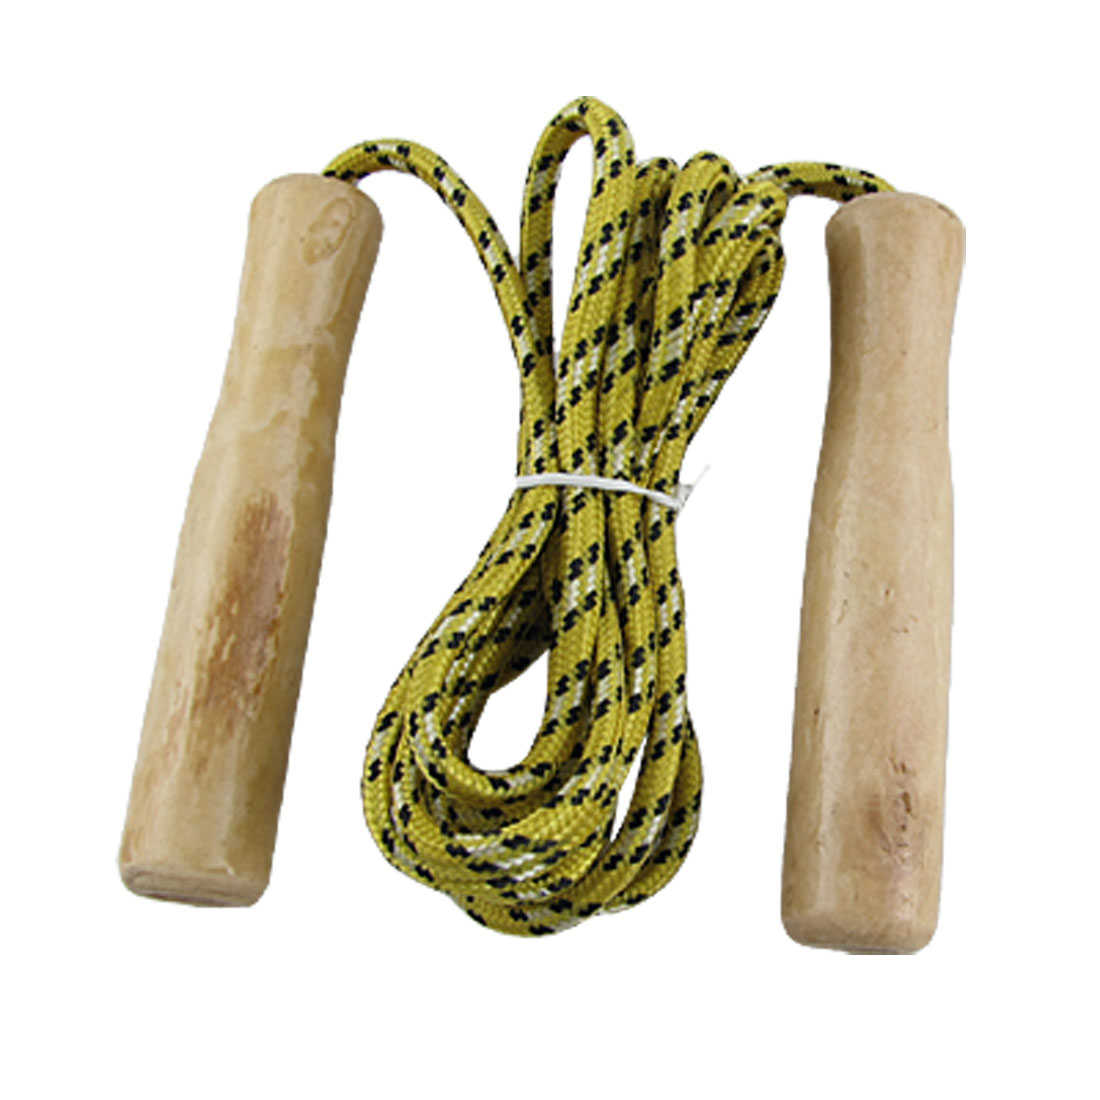 Gym Wooden Handle Fitness Adjustable Jumping Skipping Rope Yellow for Unisex